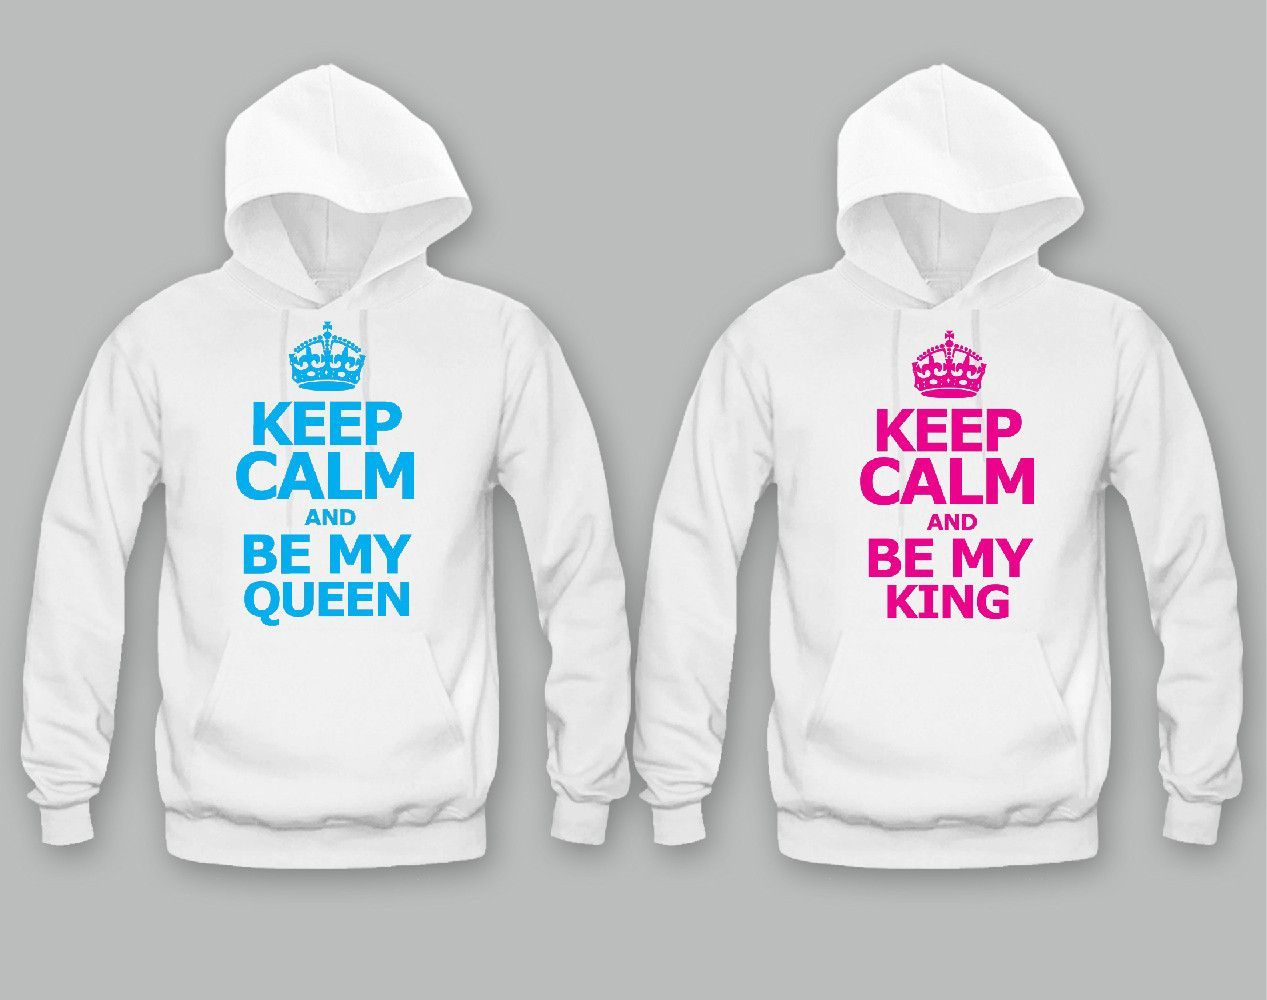 d9492408bc Keep calm She's My Queen - Keep Calm He's My King Unisex Couple Matching  Hoodies